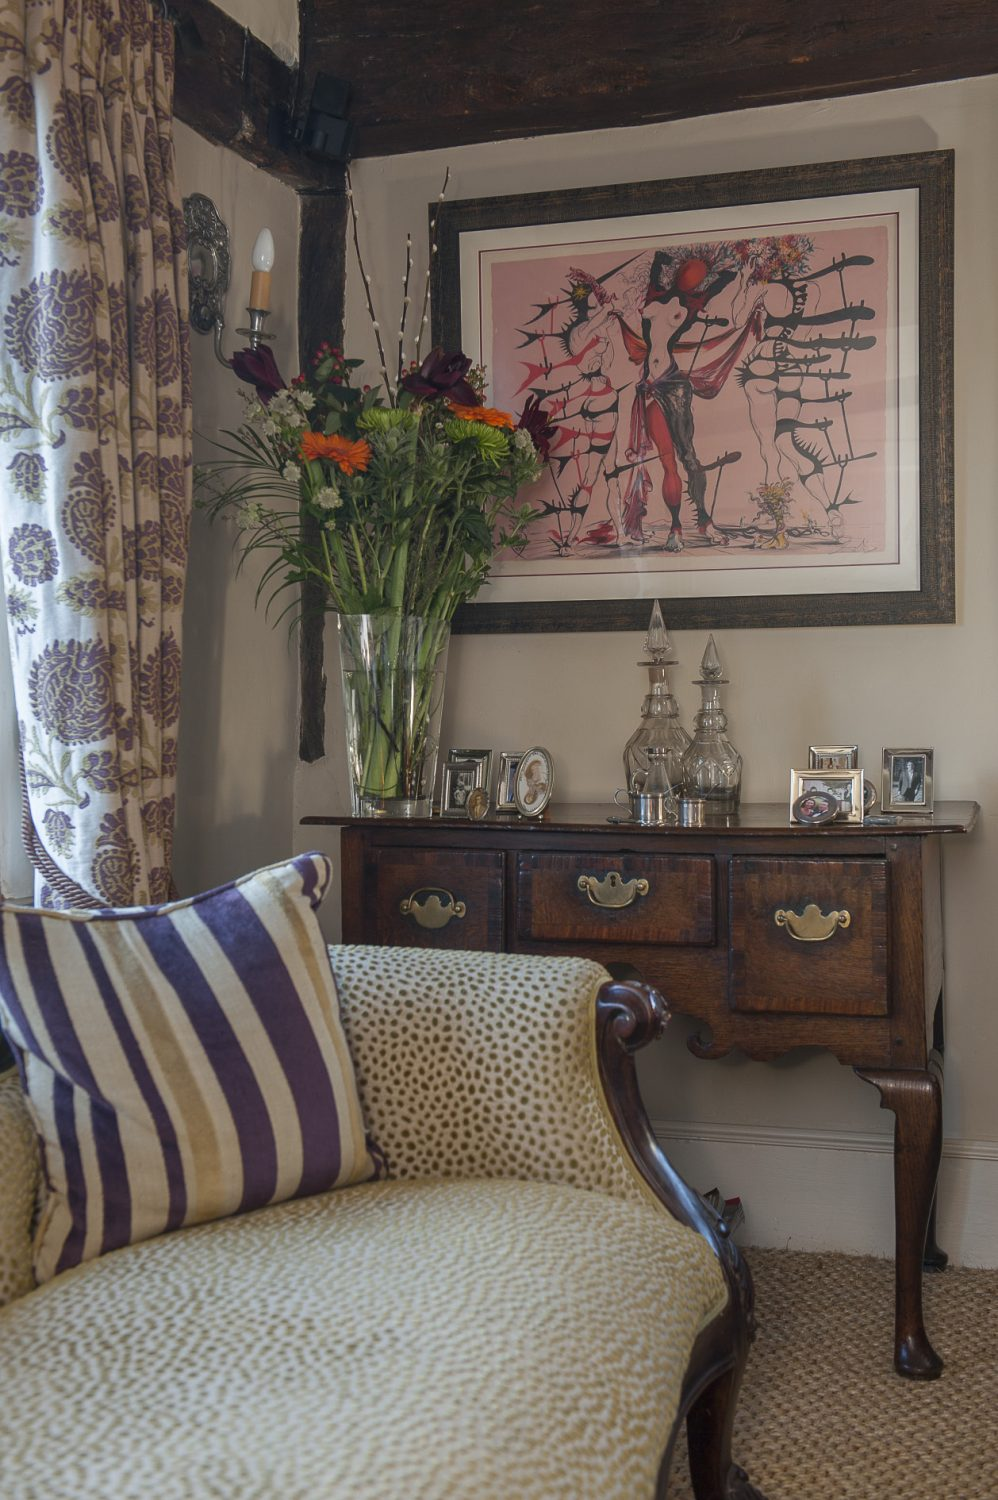 The couple bought this Salvador Dali lithograph, from the Femmes des Fleurs series and dated 1939, in Paris. It hangs above a chaise longue that Sarah had re-upholstered by Steve Burton in Appledore